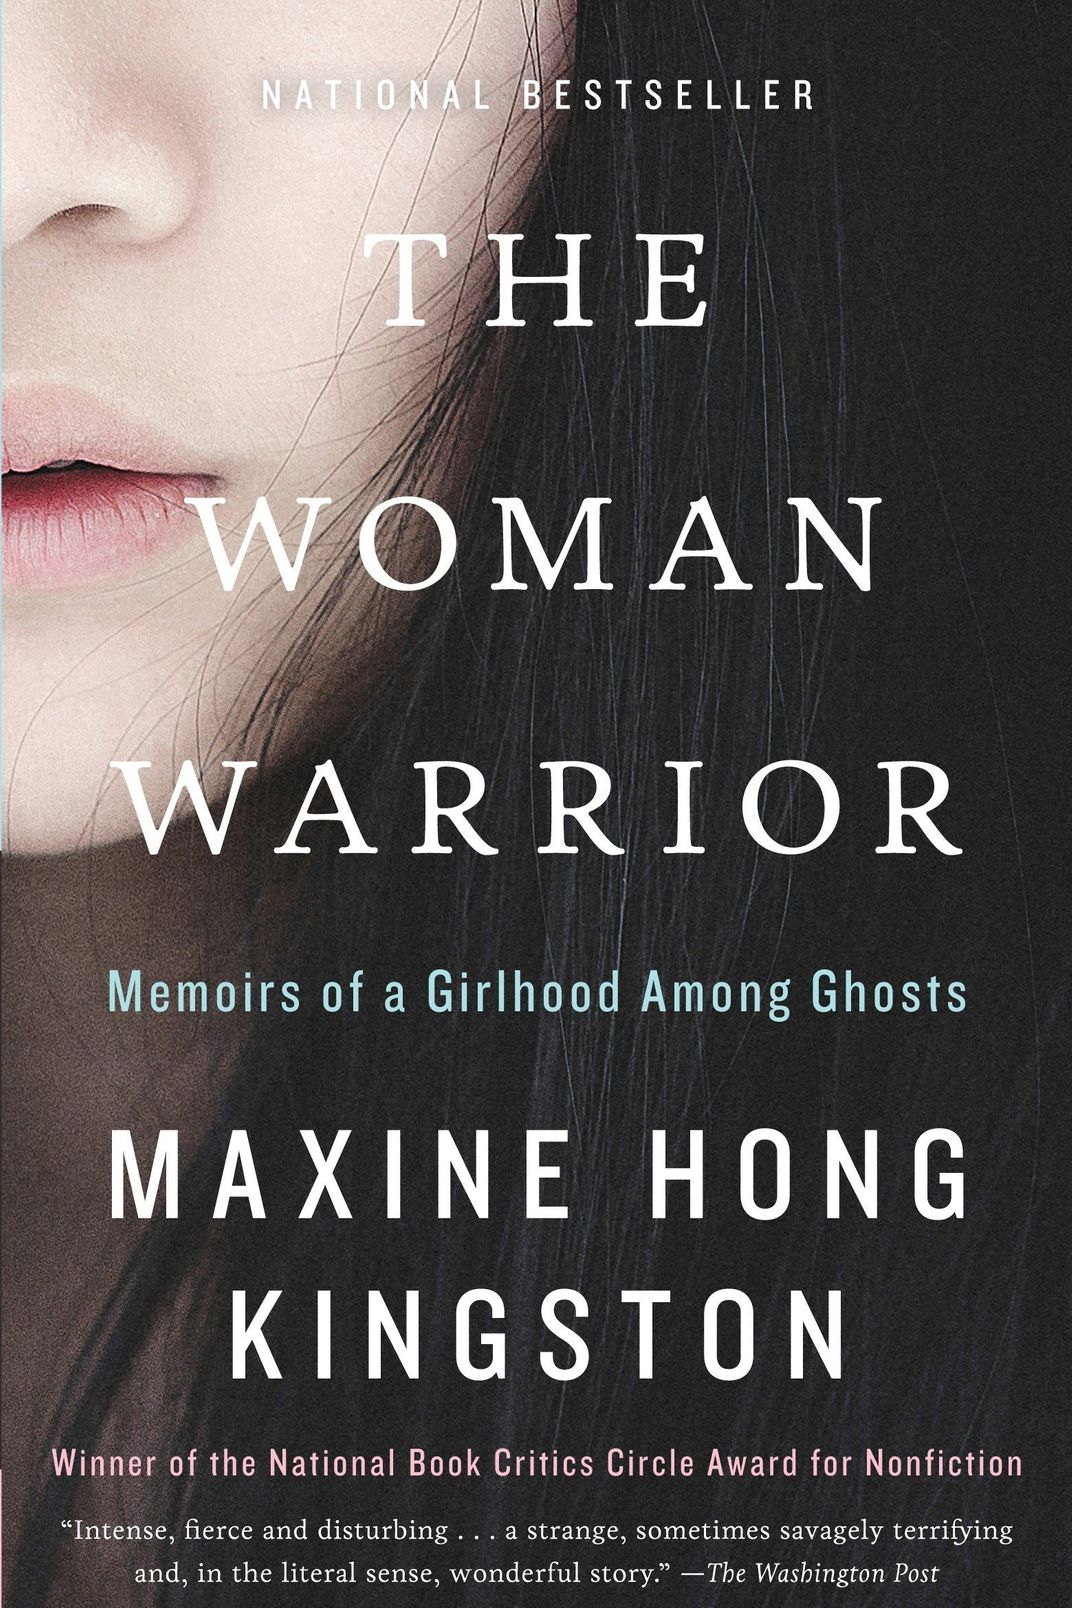 The Woman Warrior, by Maxine Hong Kingston